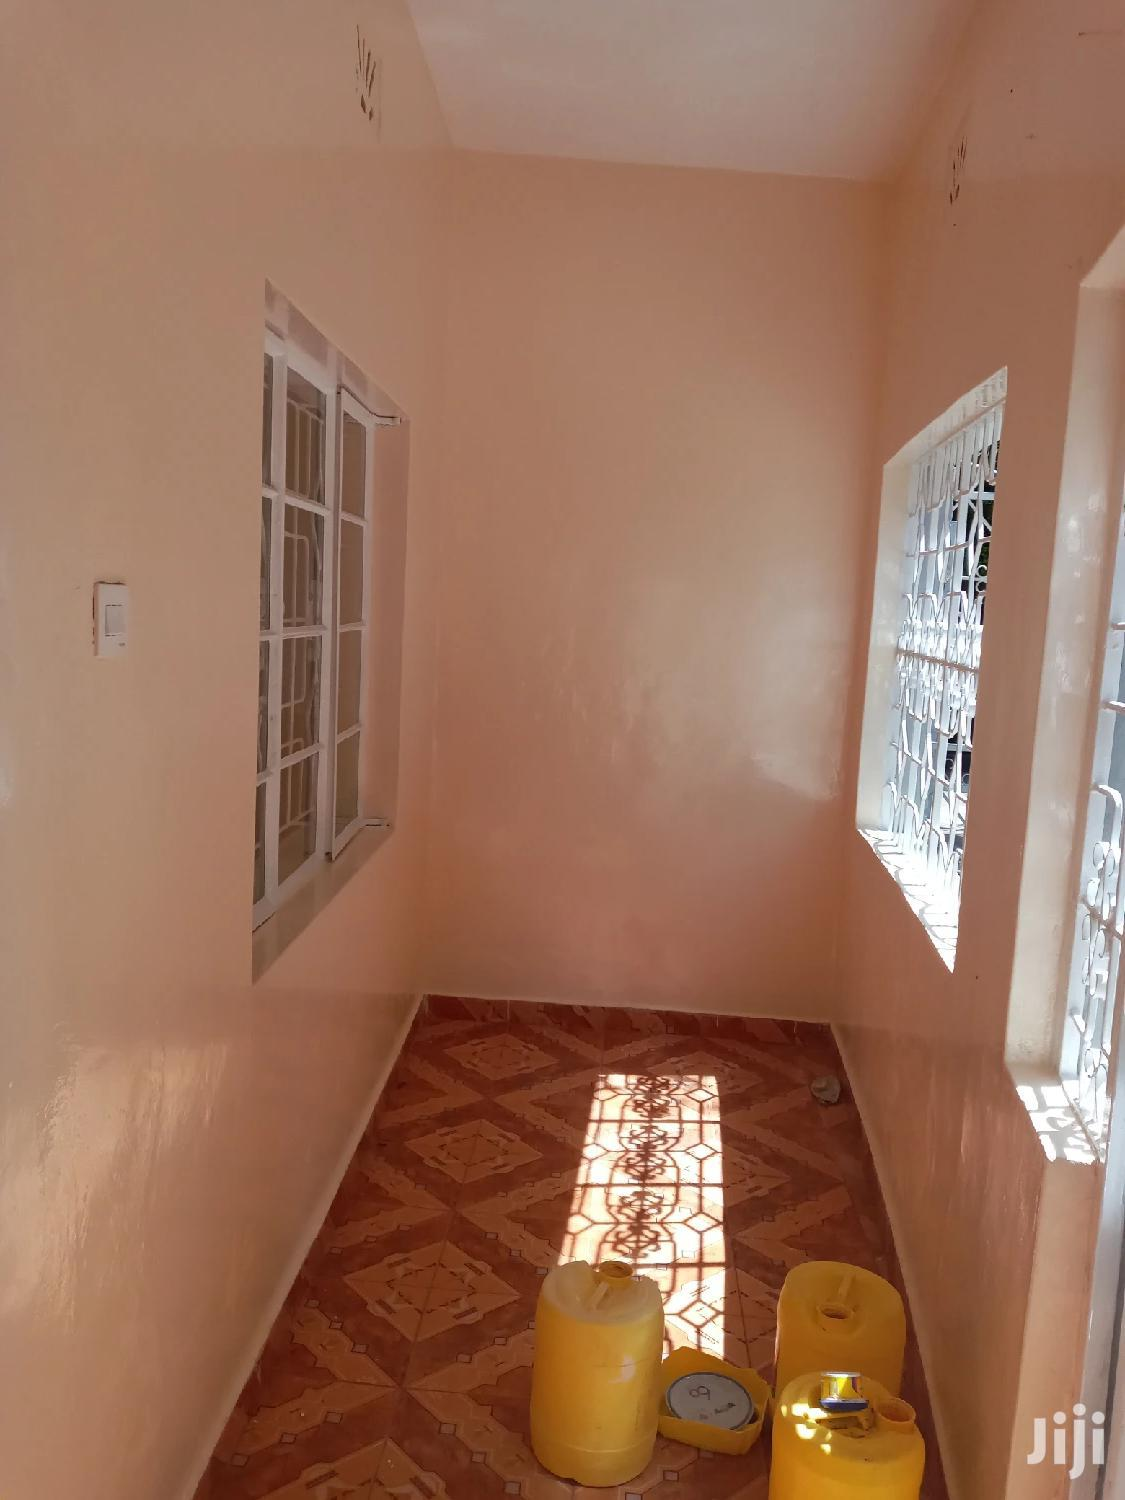 3bedroom House To Let In Parklands | Houses & Apartments For Rent for sale in Westlands, Nairobi, Kenya